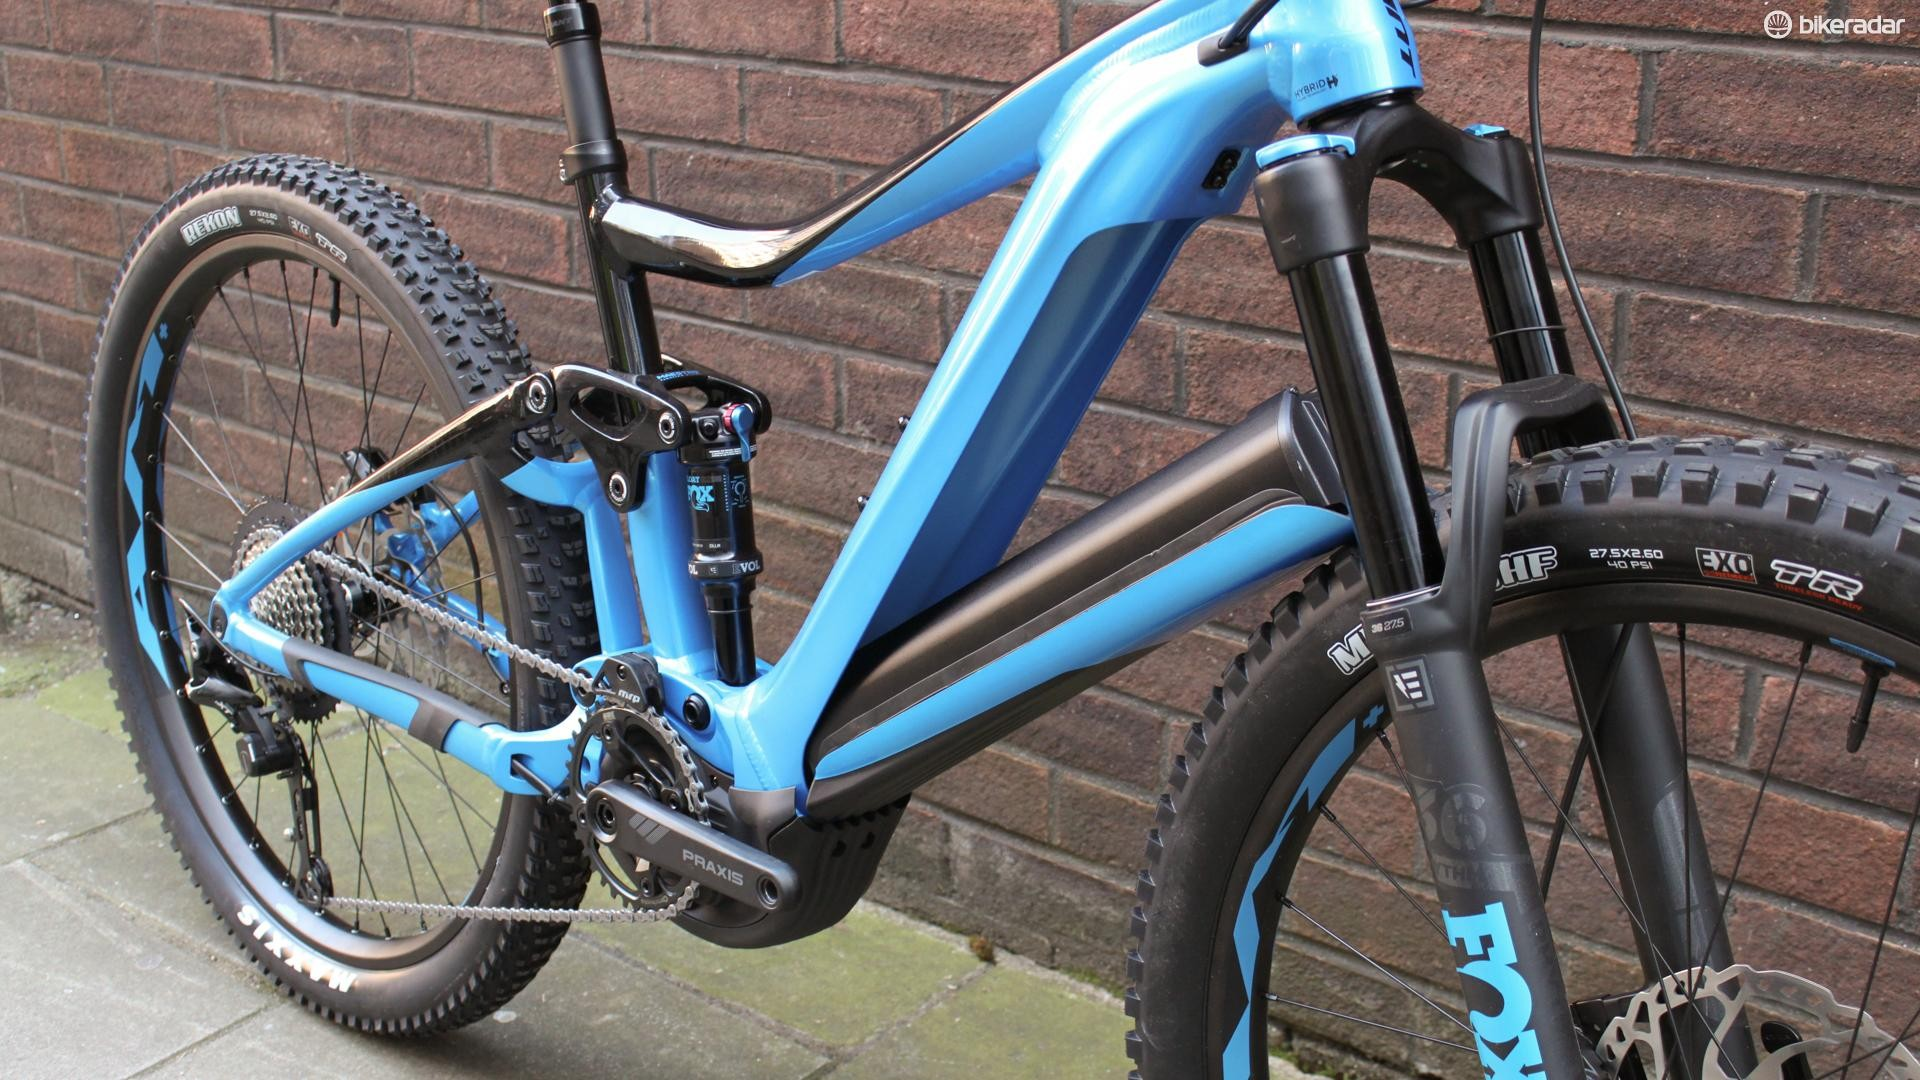 That massive battery is slickly integrated into the downtube